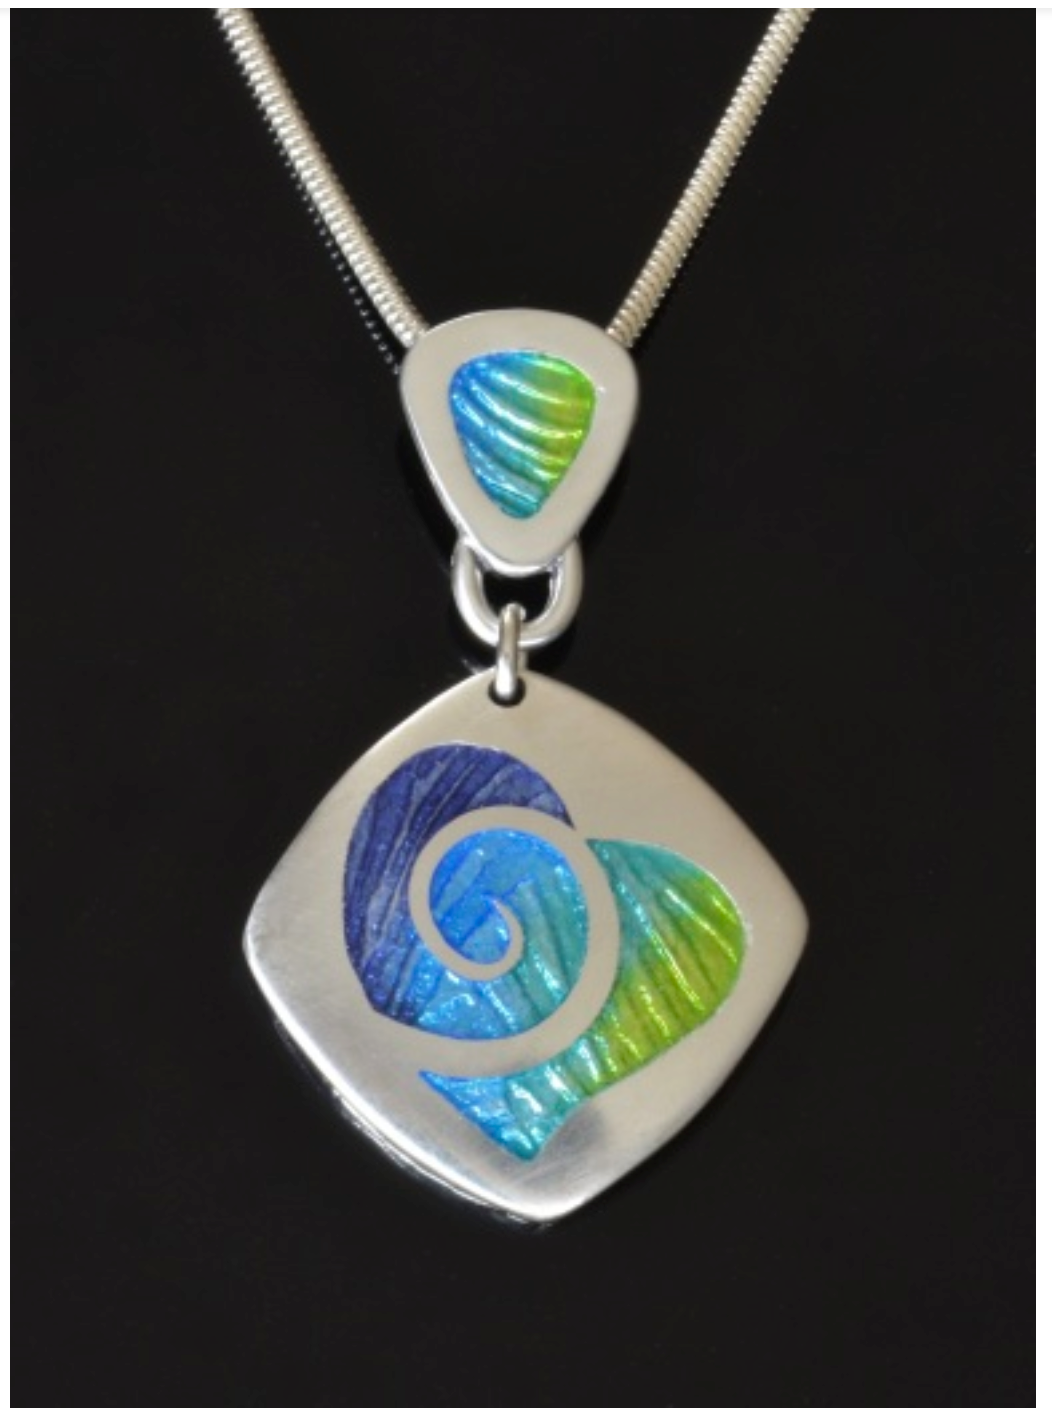 Champleve pendant by Monique Perry (Jewelry)